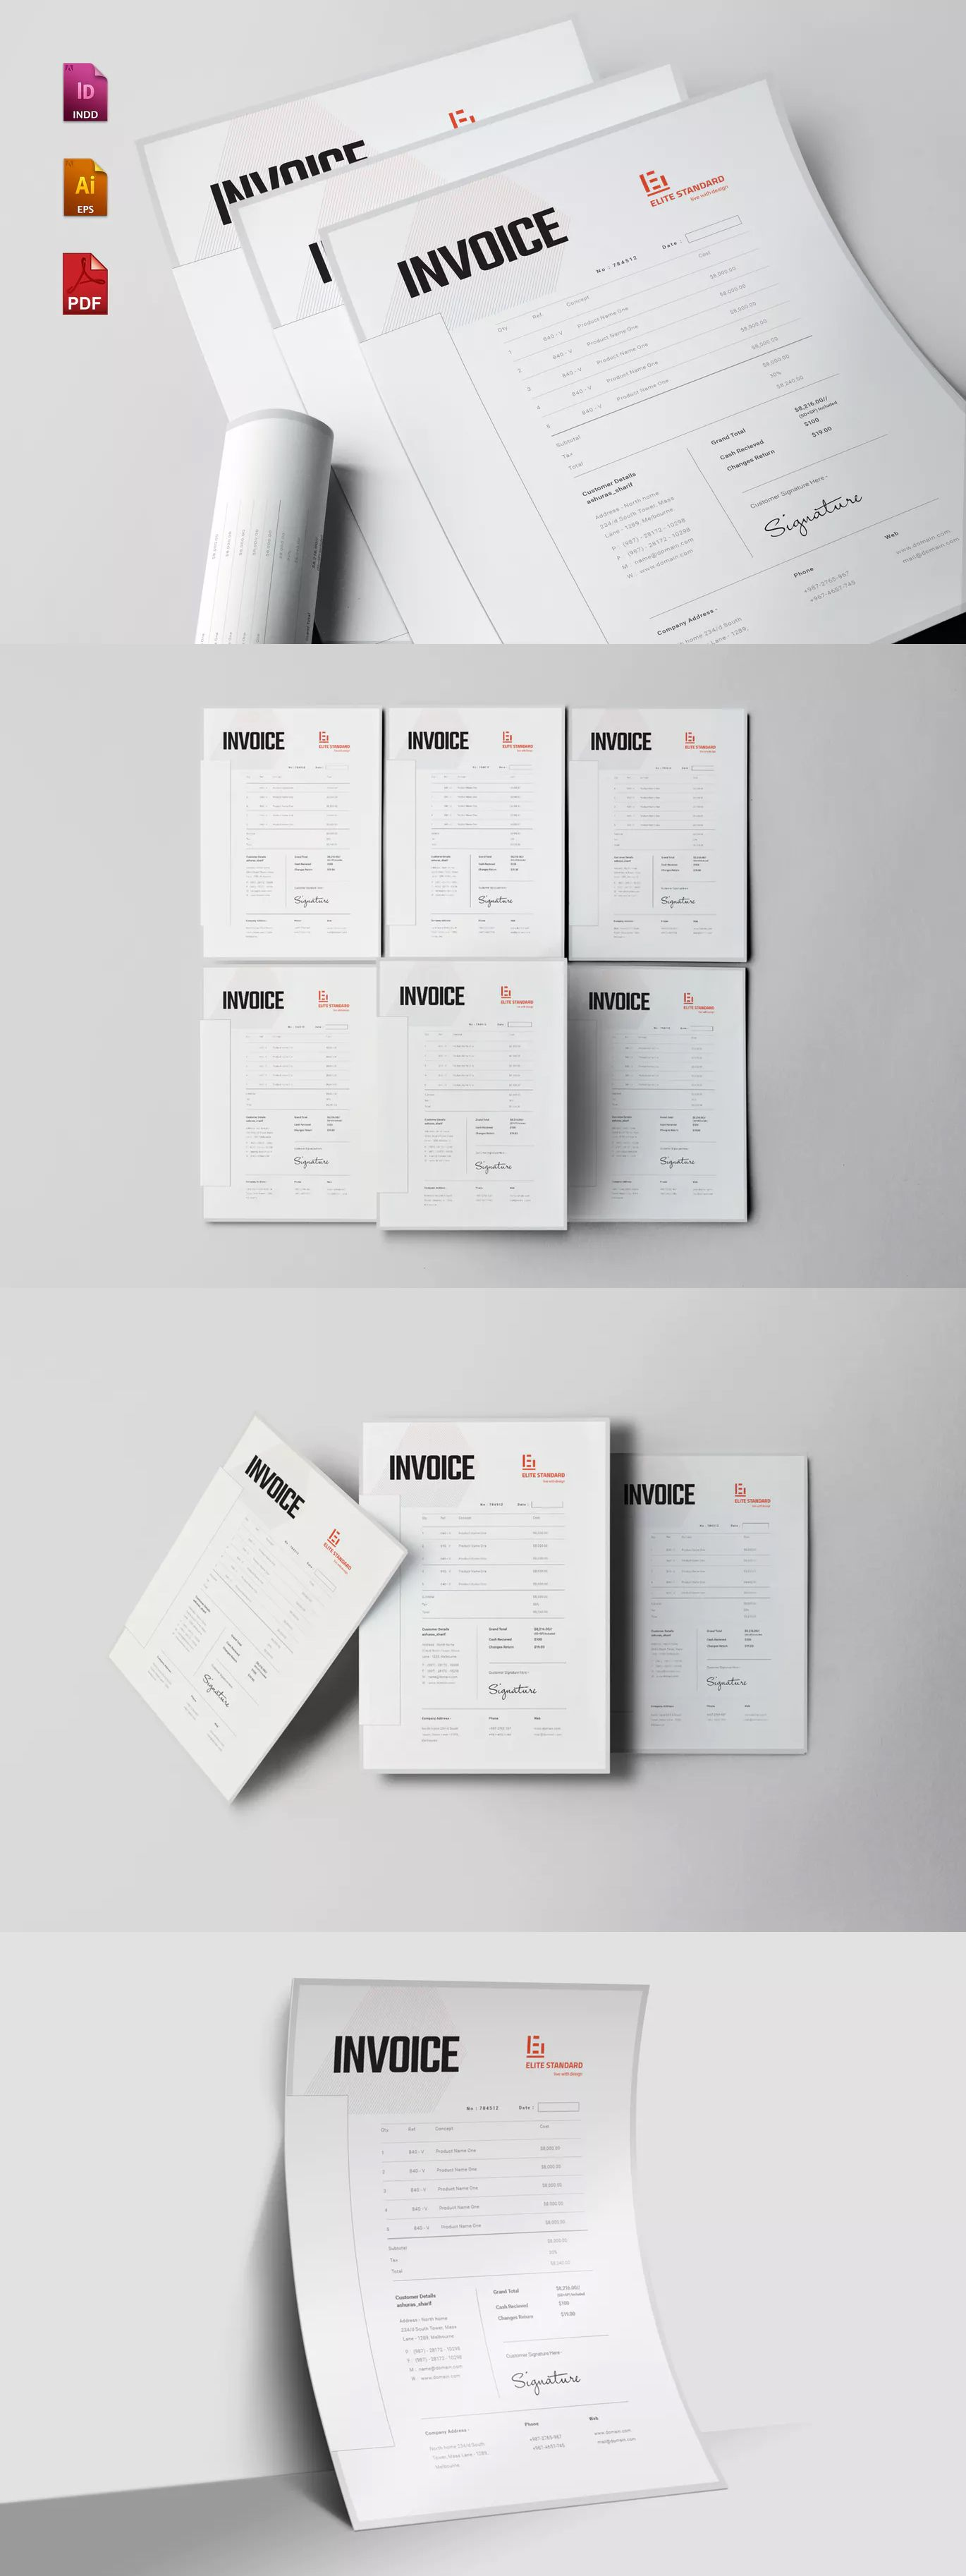 Invoice Template EPS, INDD - A4 and US Letter Size | Invoice ...